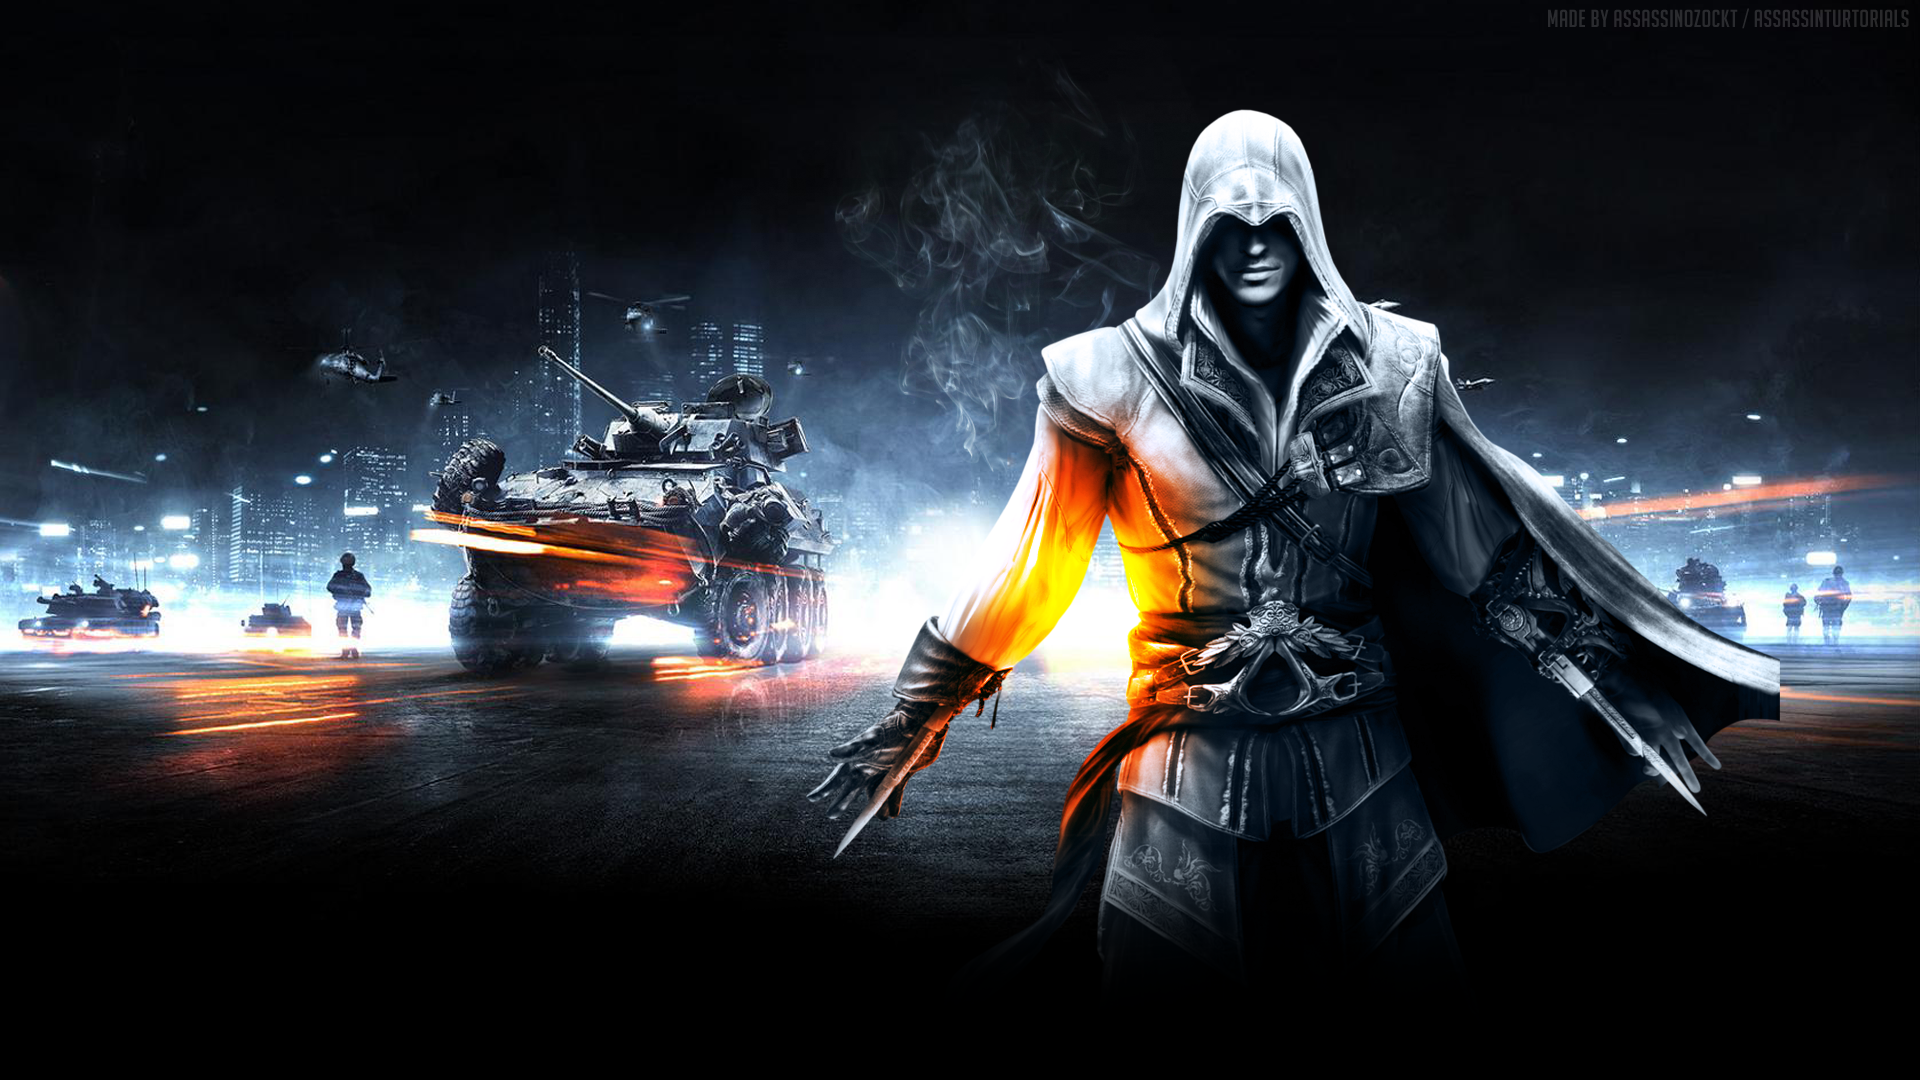 Epic Gaming Wallpapers  Wallpaper  1920x1080